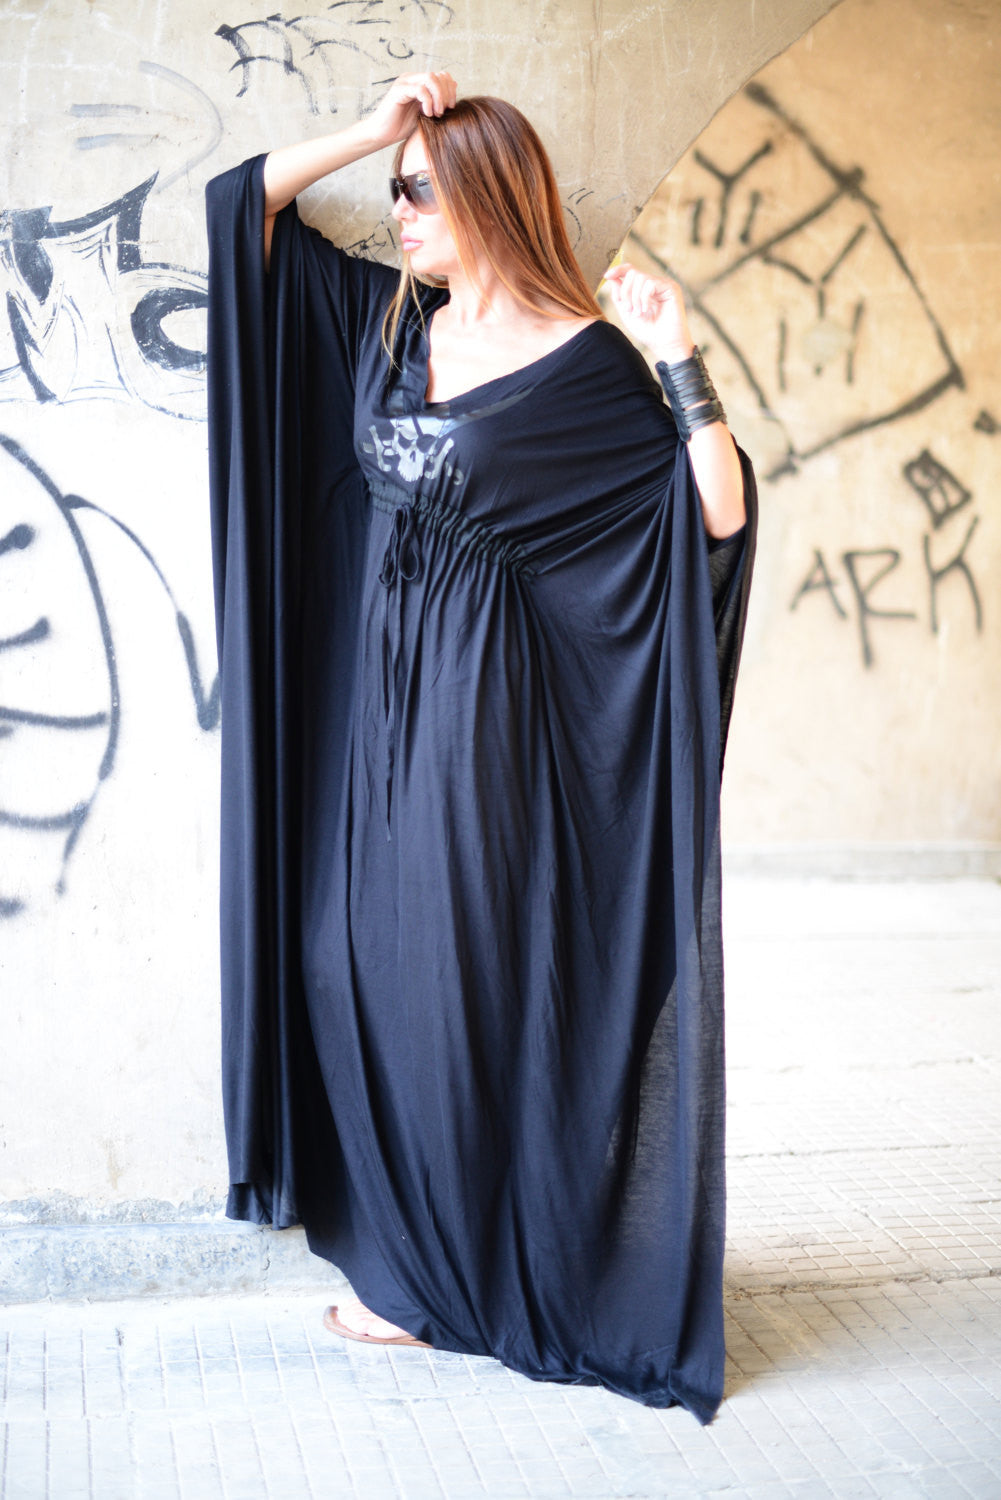 Black Maxi Dress, Long Dress, Daywear Dress, Cotton Maxi Dress